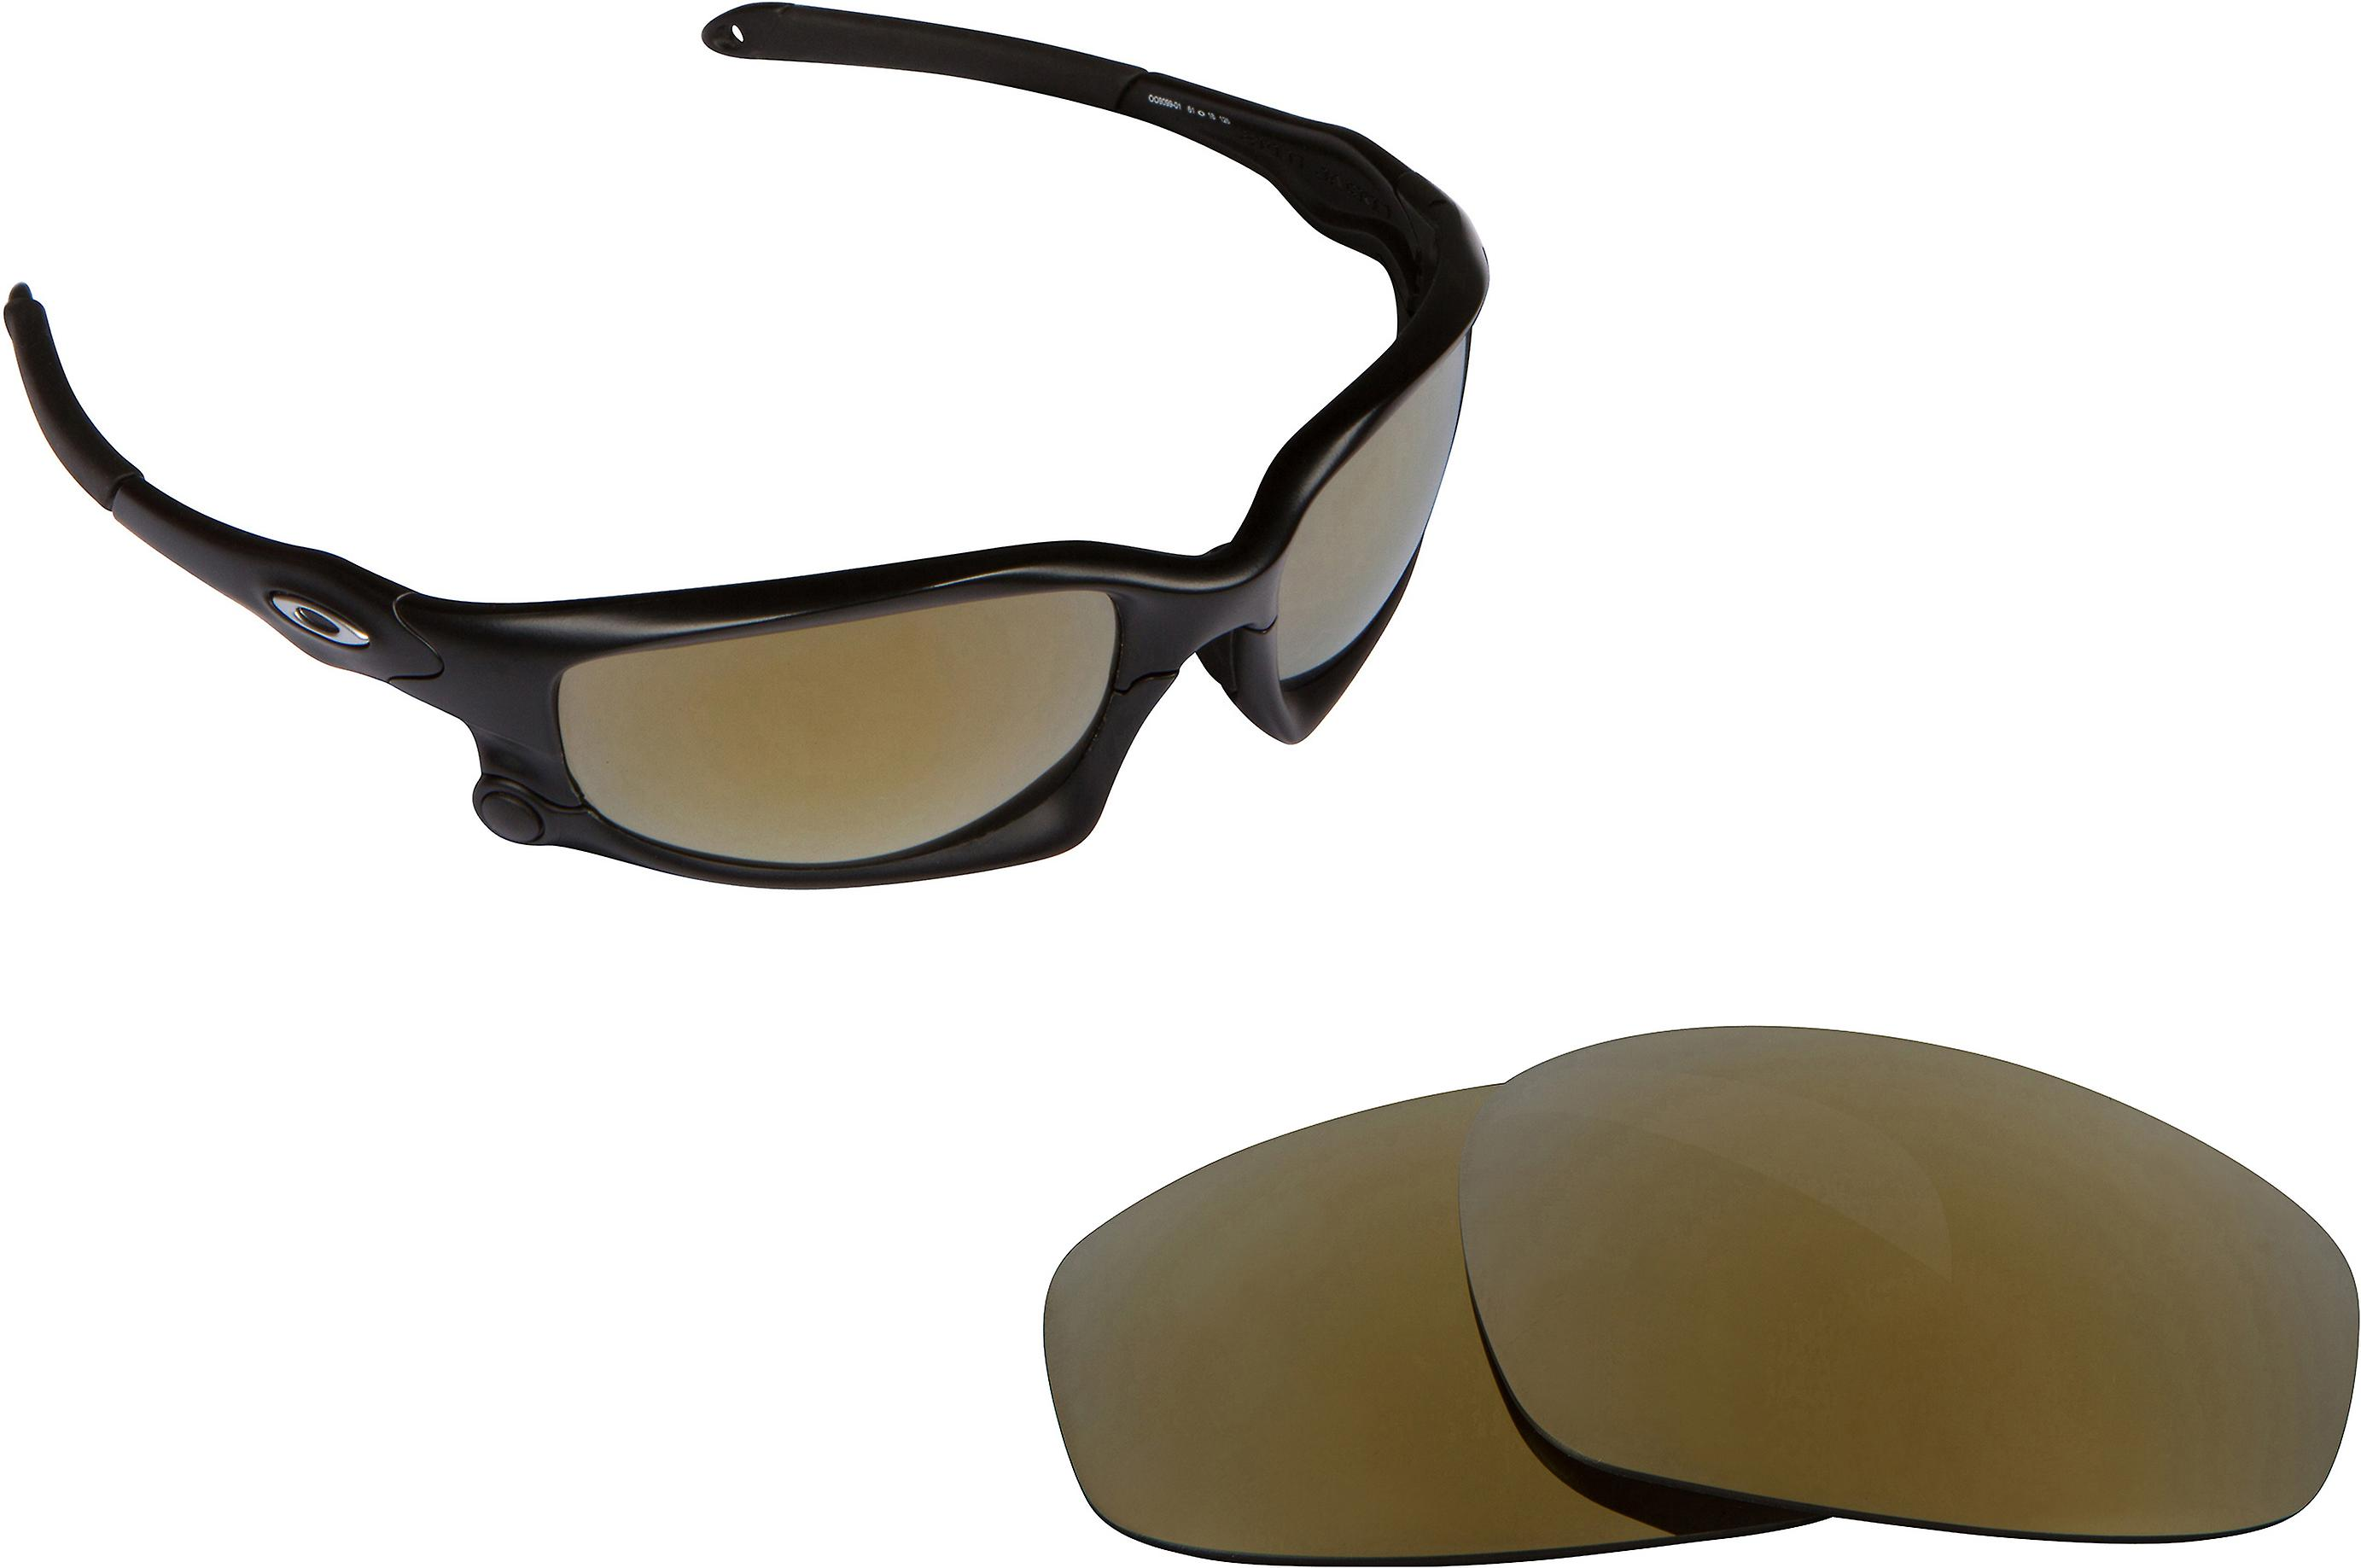 5ff54a712c7 Split Jacket Replacement Lenses Polarized Gold by SEEK fits OAKLEY  Sunglasses